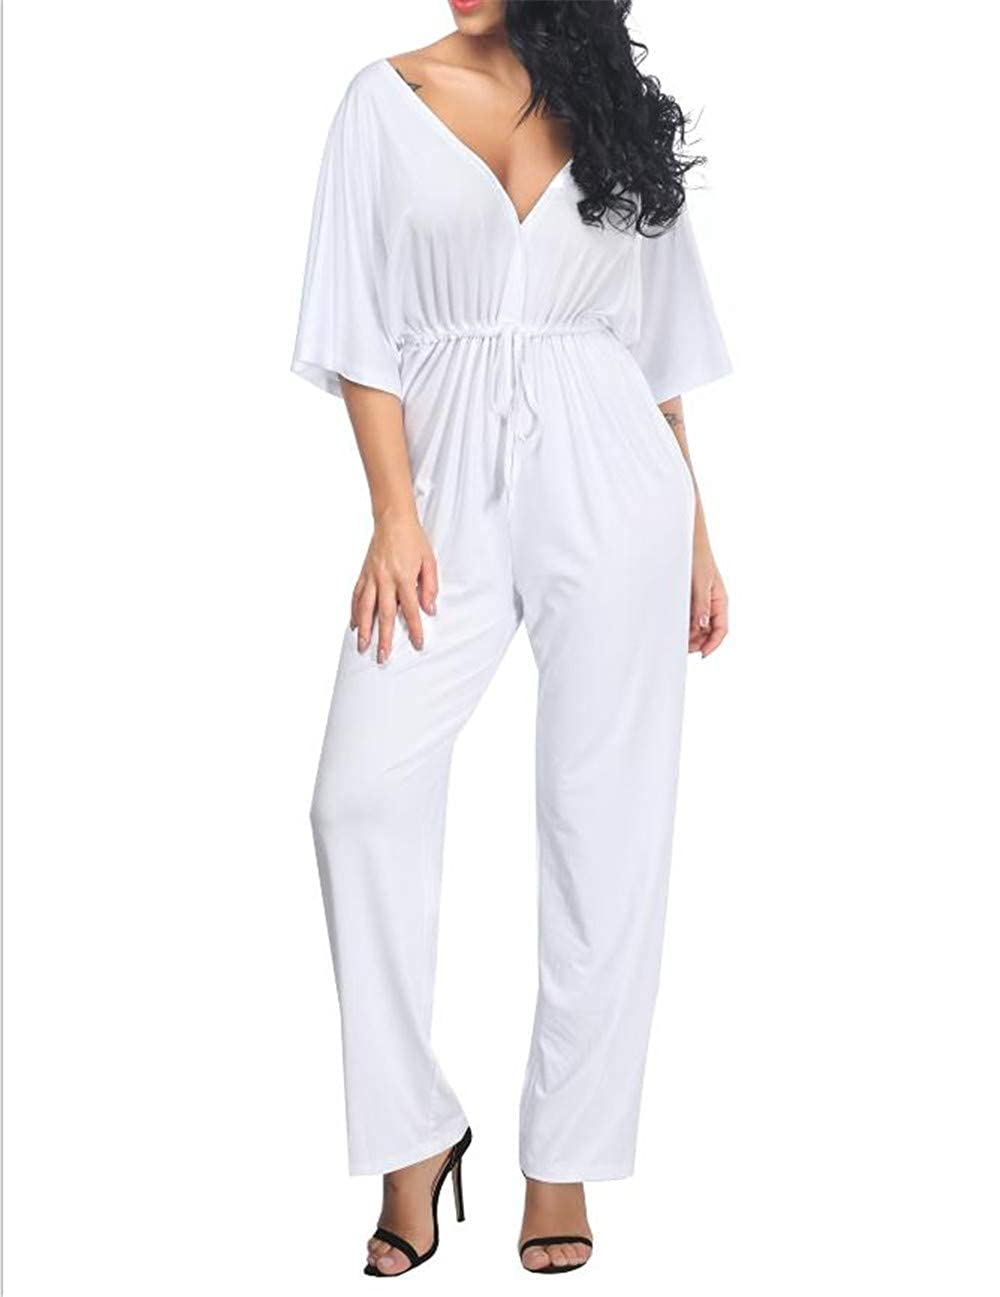 White Super color Women's Sexy Casual Short Sleeve Elastic Waist Jumpsuit Rompers